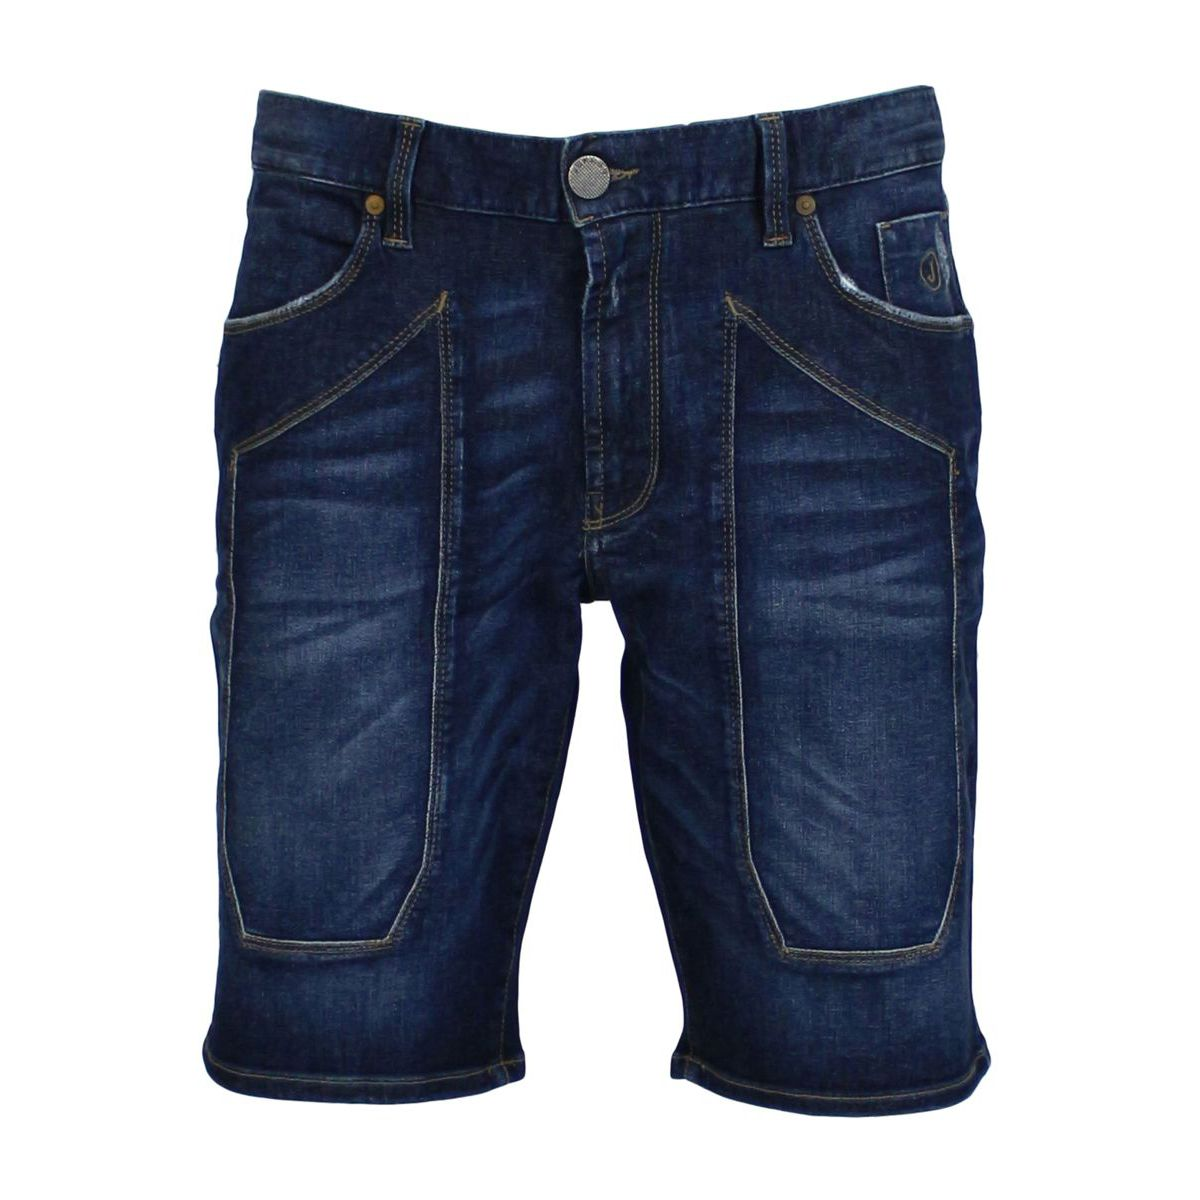 Bermuda shorts in jeans with patches Dark denim Jeckerson